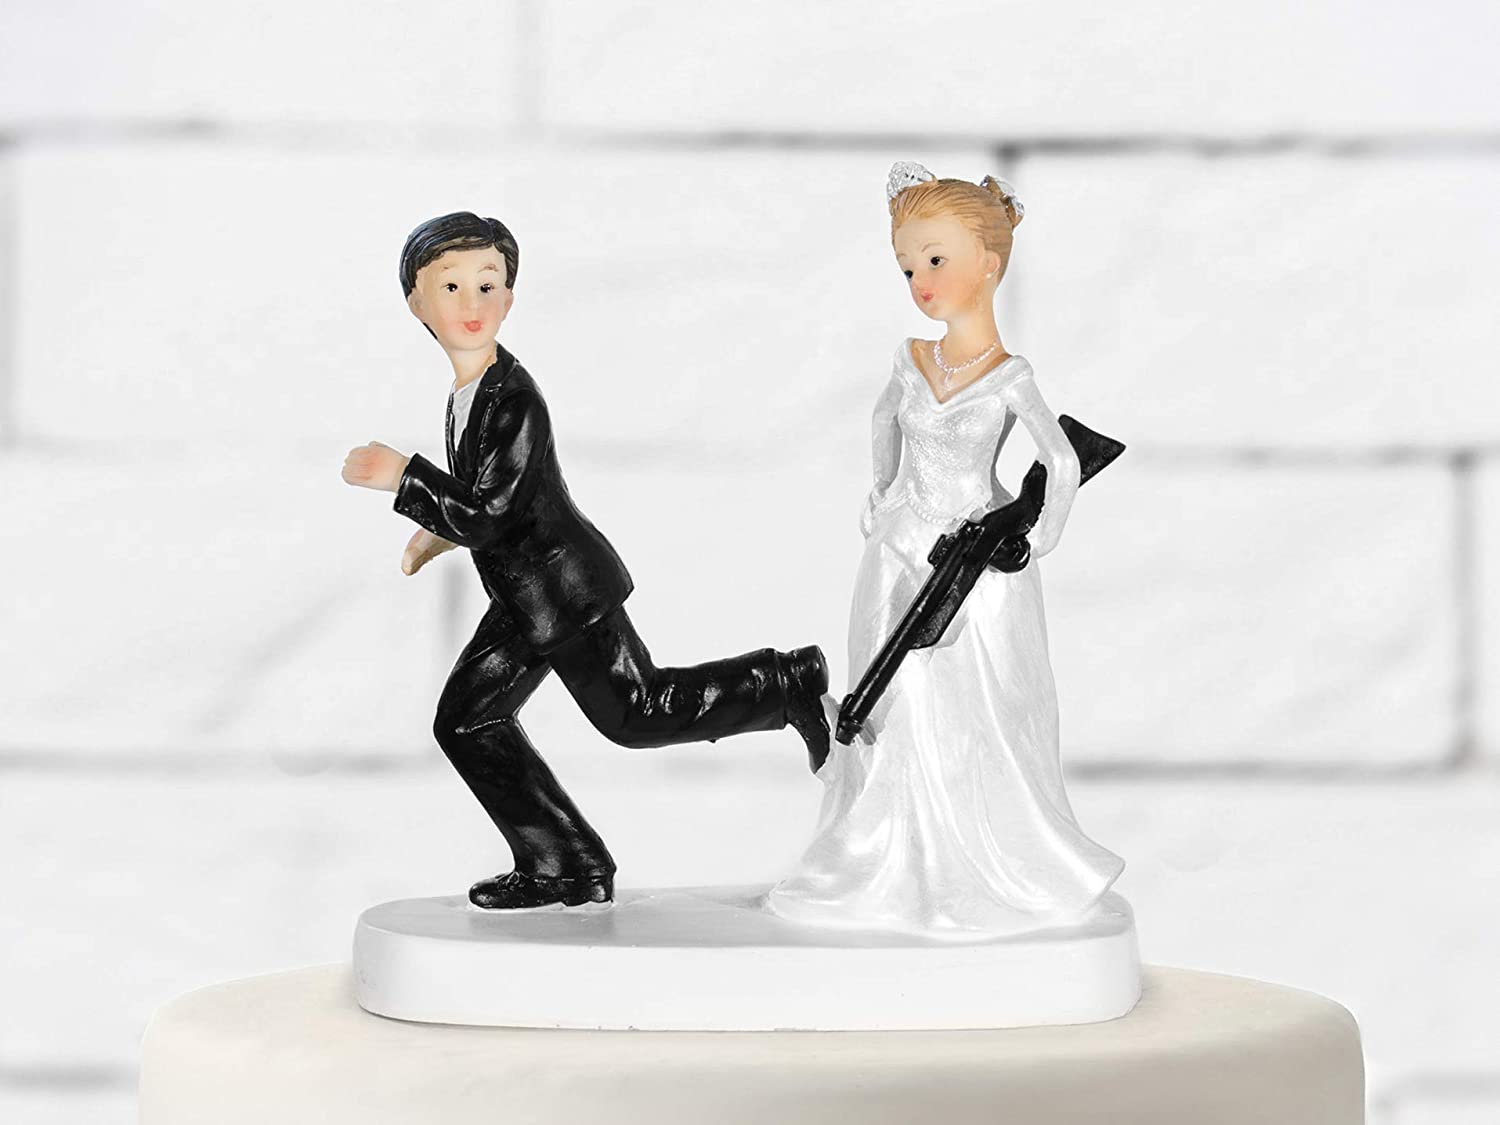 Party Deco Cake Topper Bride with Gun 13 cm Black and White